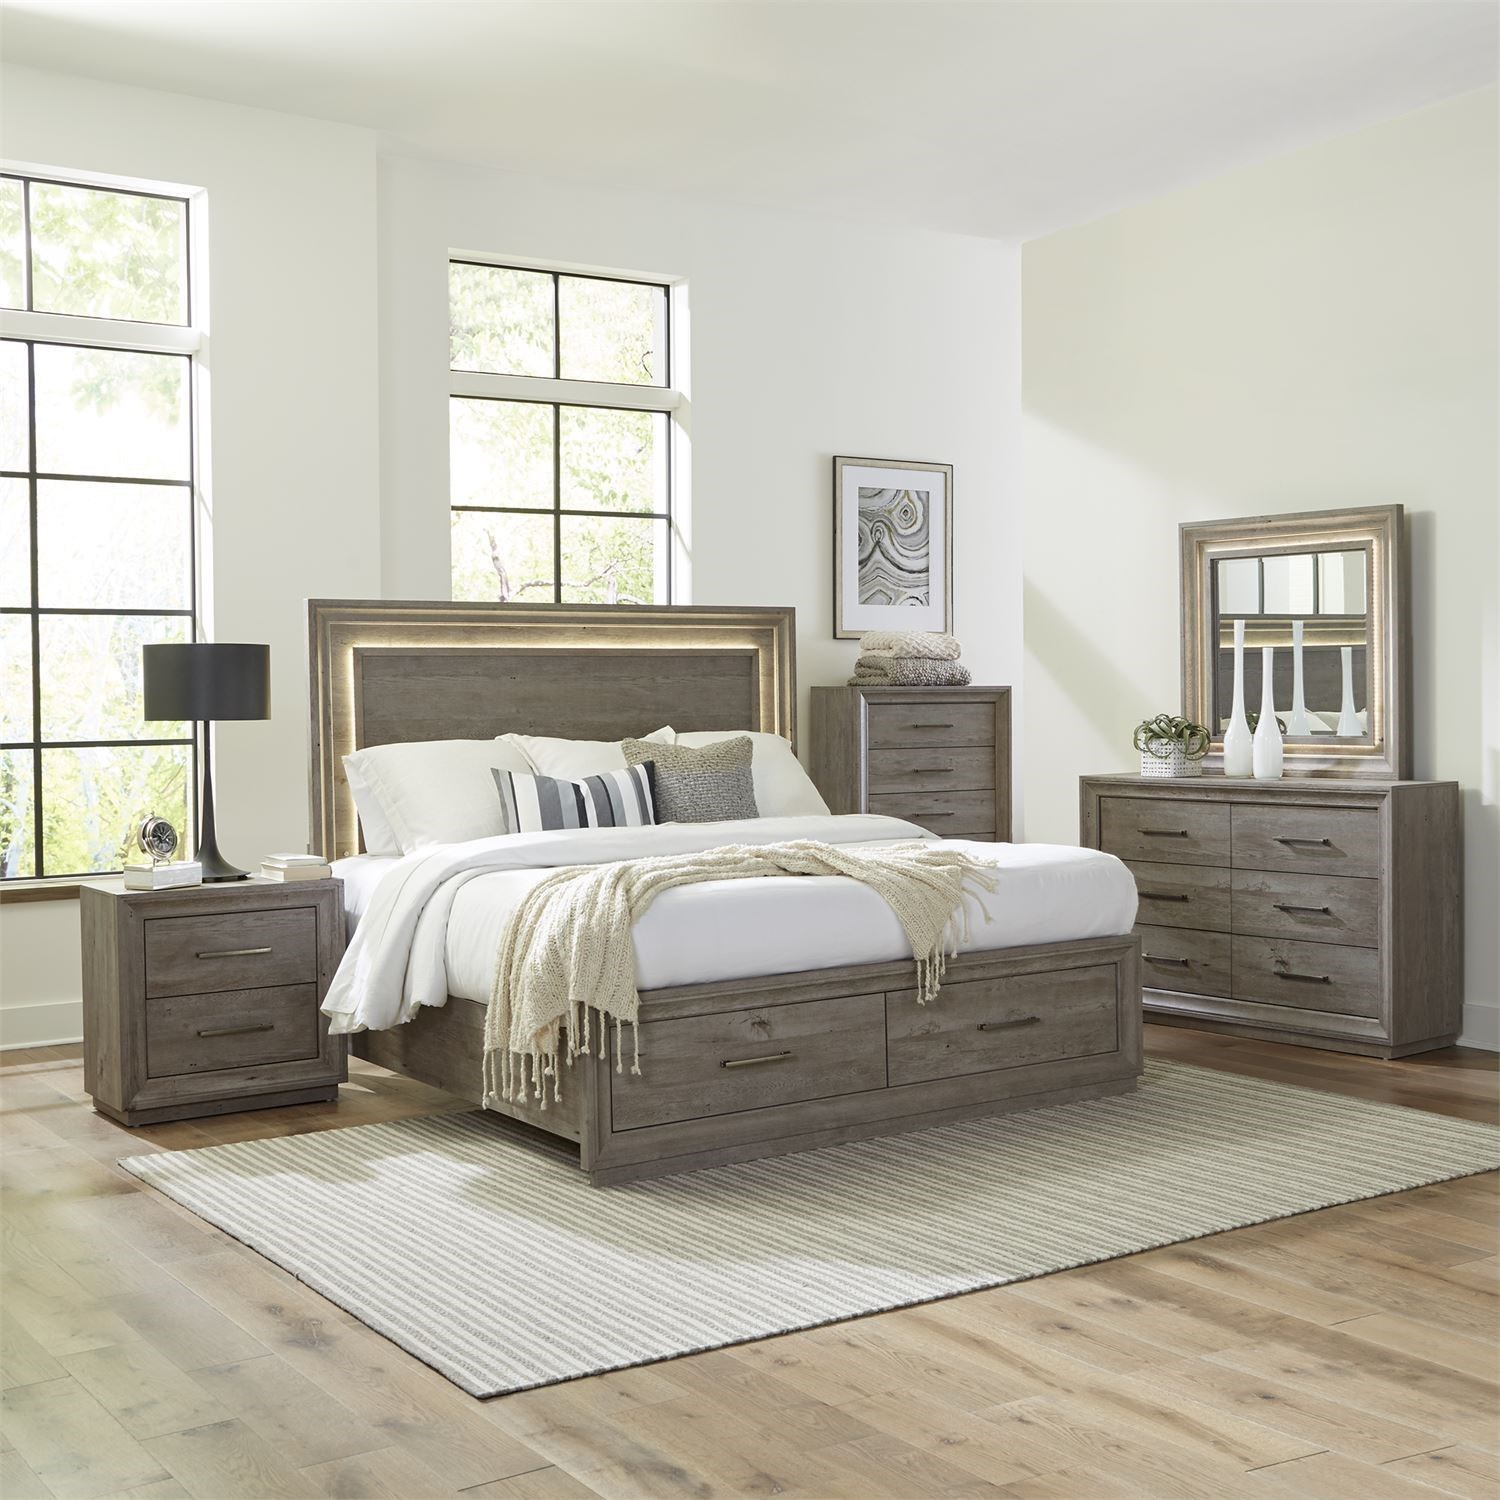 Horizons King Bedroom Group by Freedom Furniture at Ruby Gordon Home